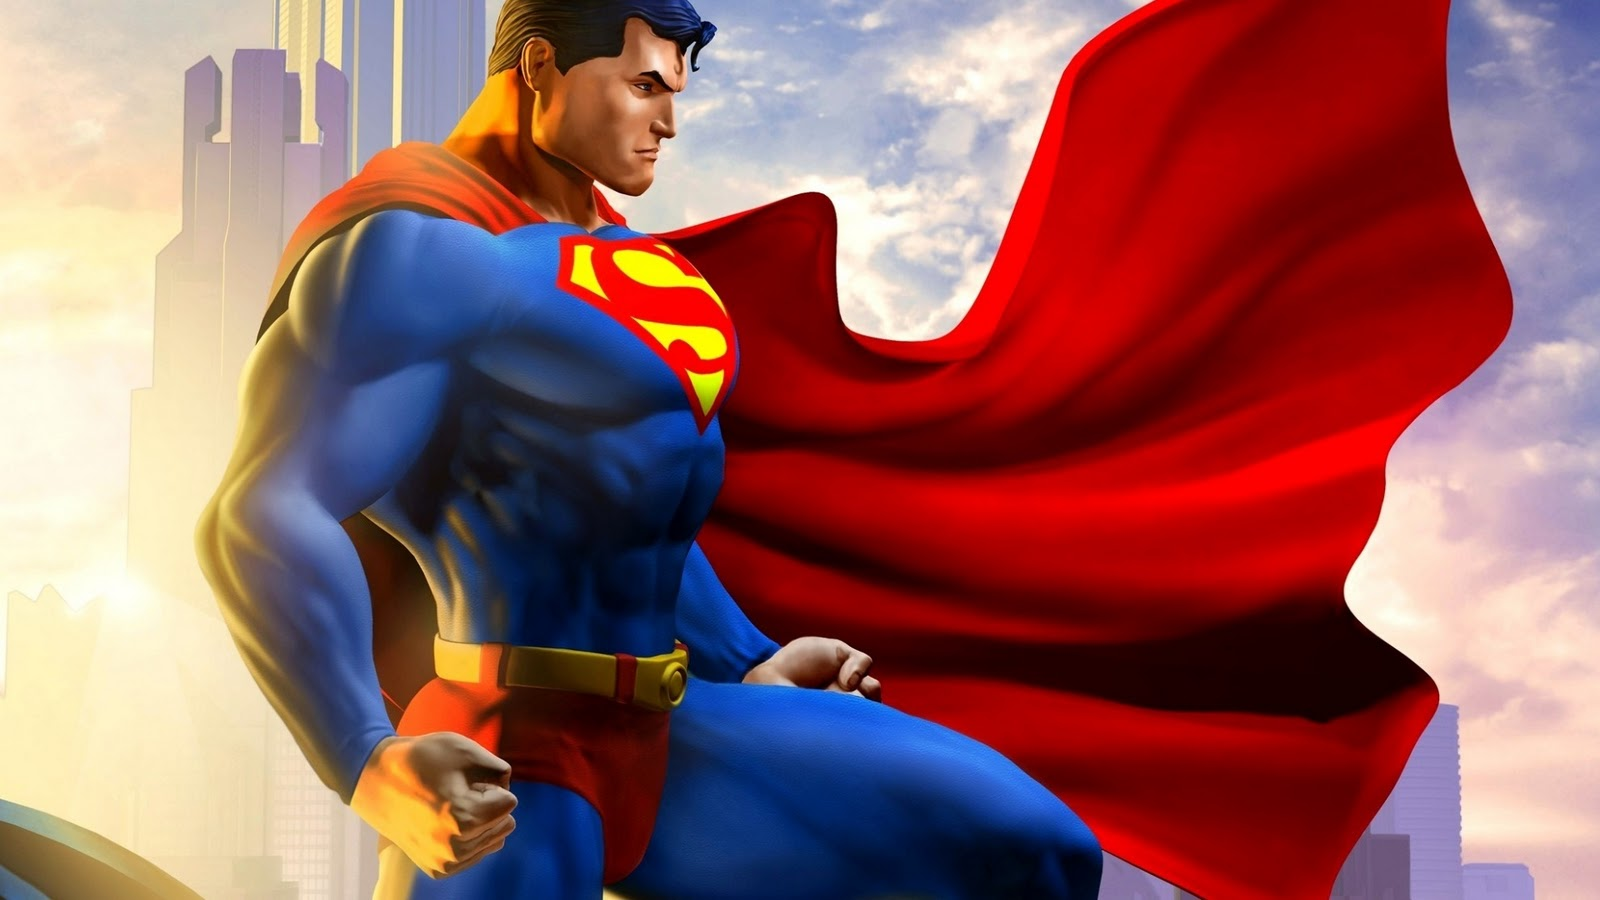 superman wallpaper hdsuperman desktop wallpapersuperman wallpaper 1600x900